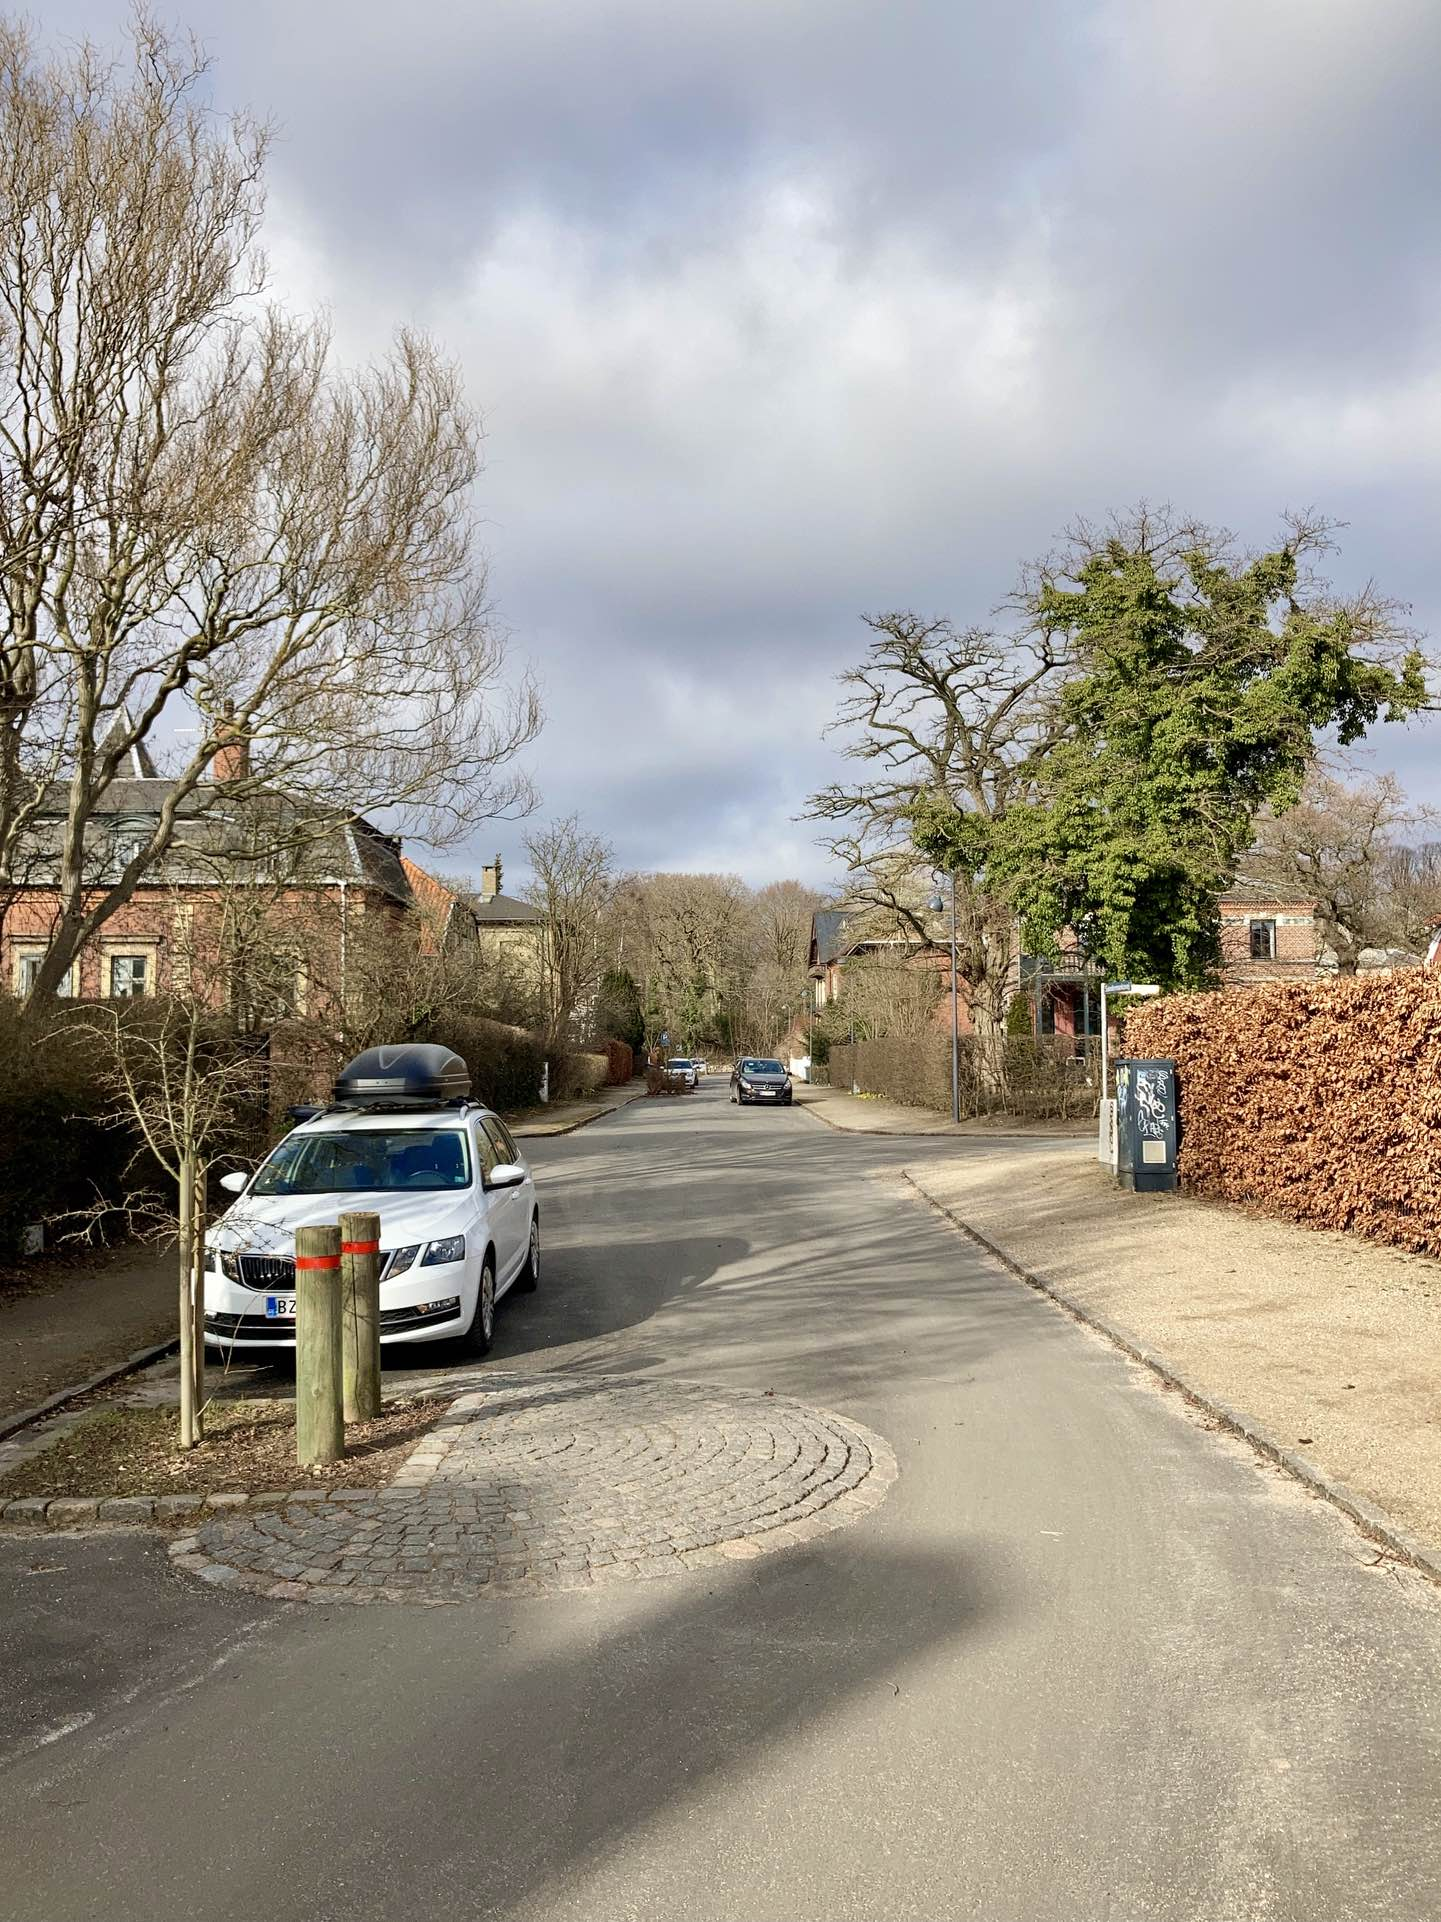 A nice residential area. Speed bumps. Quiet, peaceful. Afternoon sun against a darkish sky. The curves of the creeper that's consumed half of the dragon tree echoed in the graffiti that's nevertheless found it's way onto the electricity box.